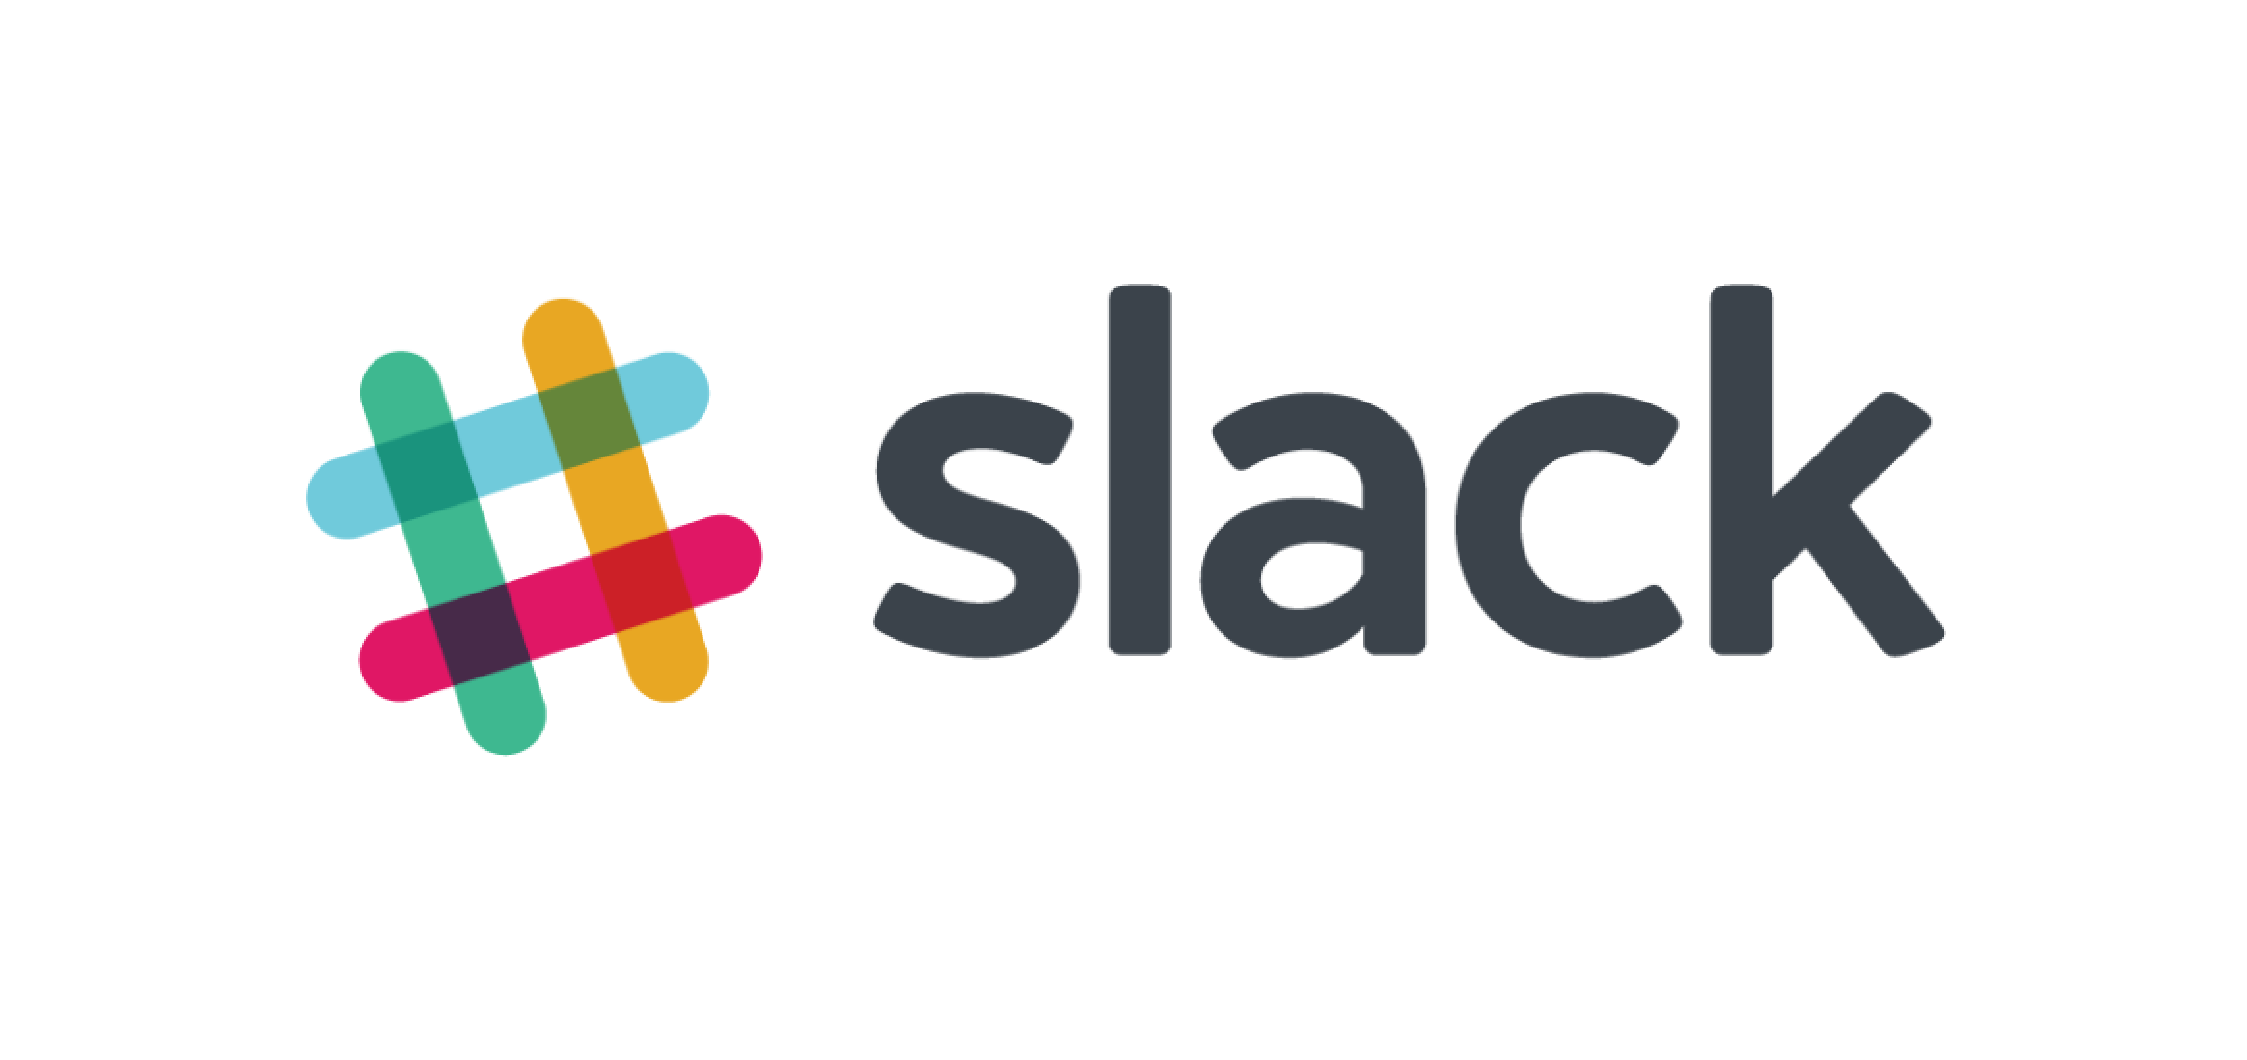 Slack is a cloud-based collaboration hub where teamwork happens - a single place for communication, tools & files.